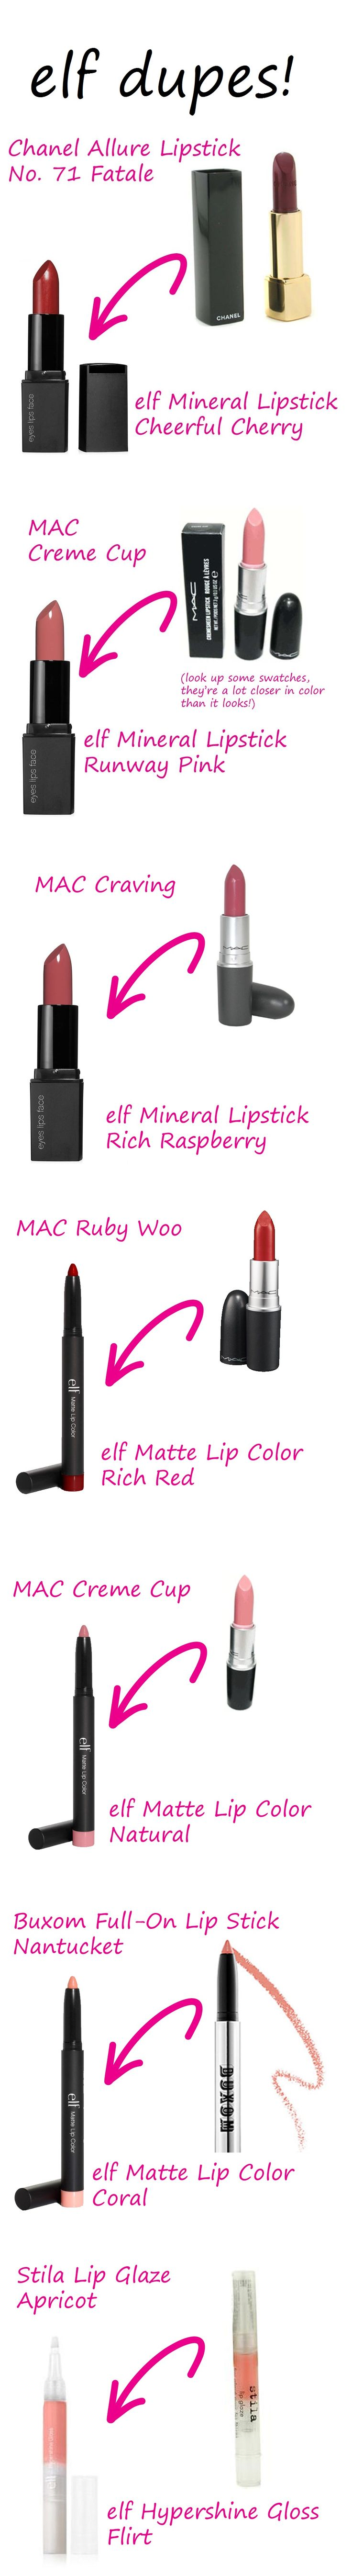 elf Lipstick Dupes! More cruelty free alternatives! Buxom is cruelty free so elf is an inexpensive alternative